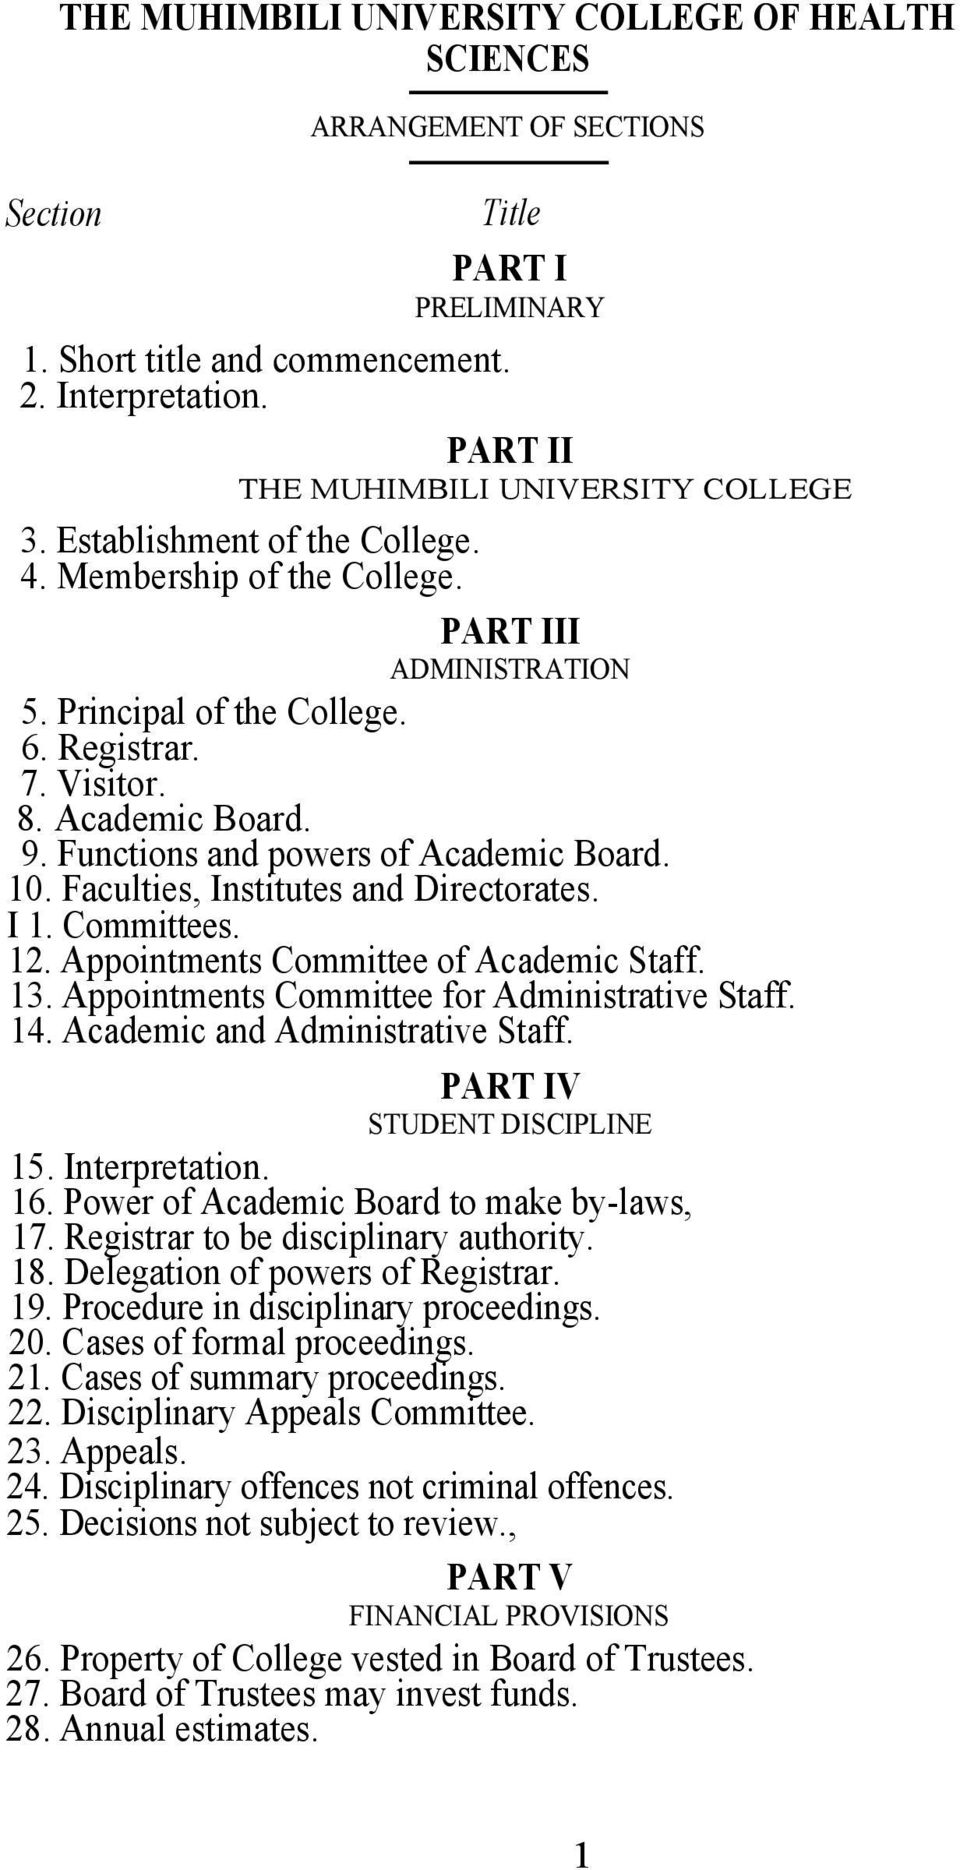 Academic Board. 9. Functions and powers of Academic Board. 10. Faculties, Institutes and Directorates. I 1. Committees. 12. Appointments Committee of Academic Staff. 13.